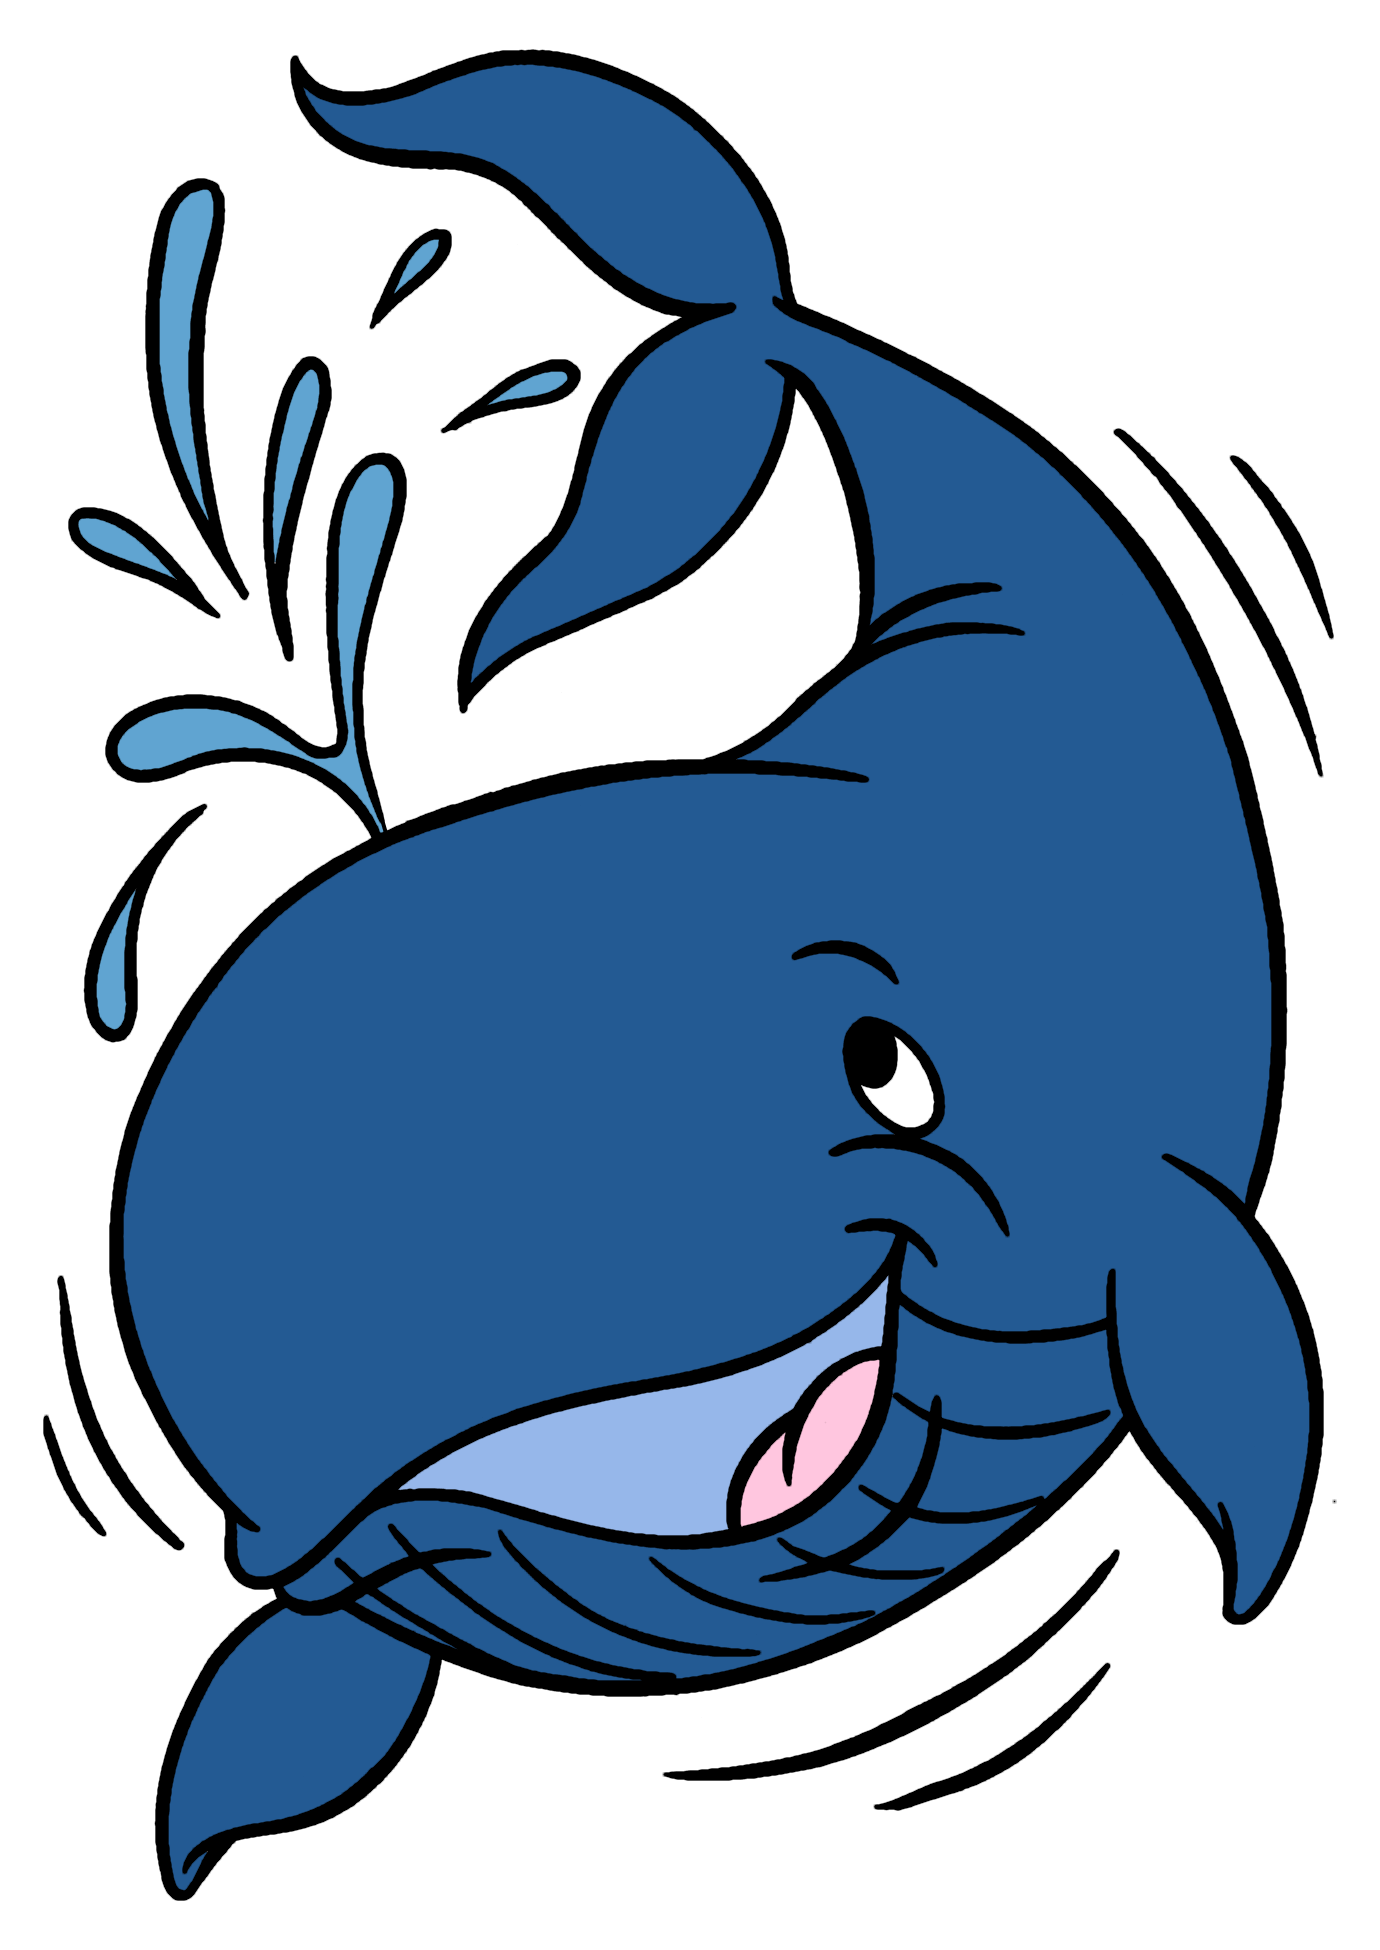 Whale clipart Cartoon clip art, Cartoon drawings, Clip art